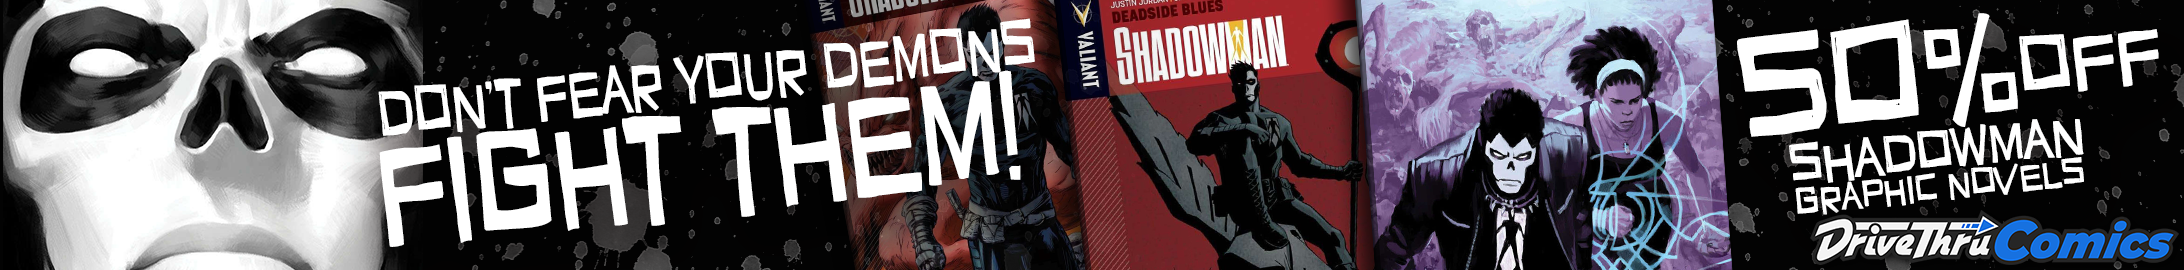 Shadowman graphic novels 50% off at @ DriveThruComics.com